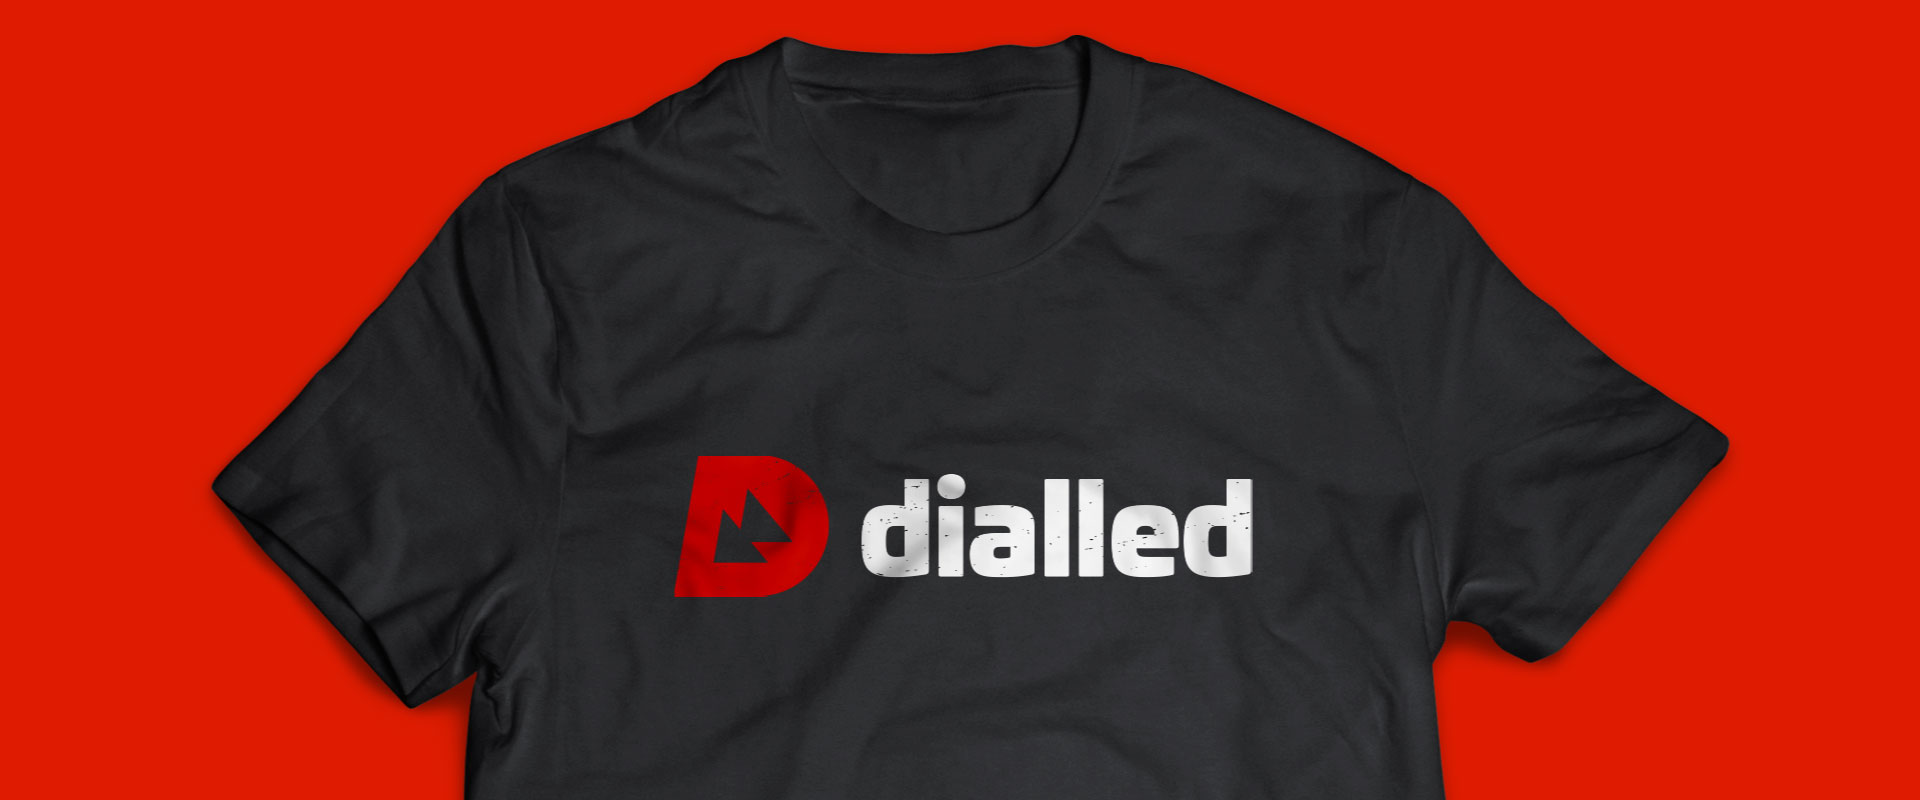 dialled - t-shirt